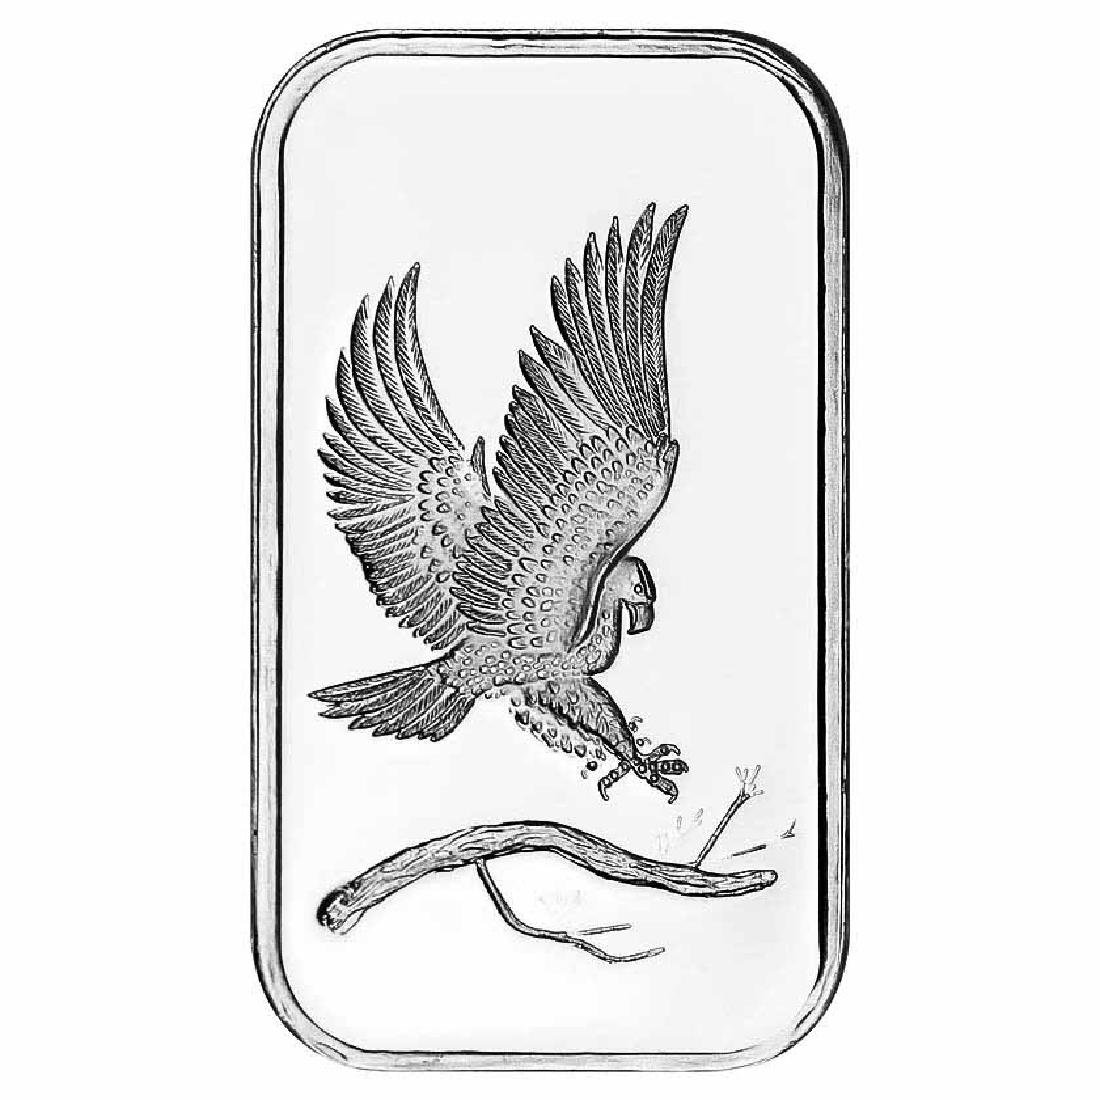 SilverTowne 1 oz Silver Bar - Eagle Design